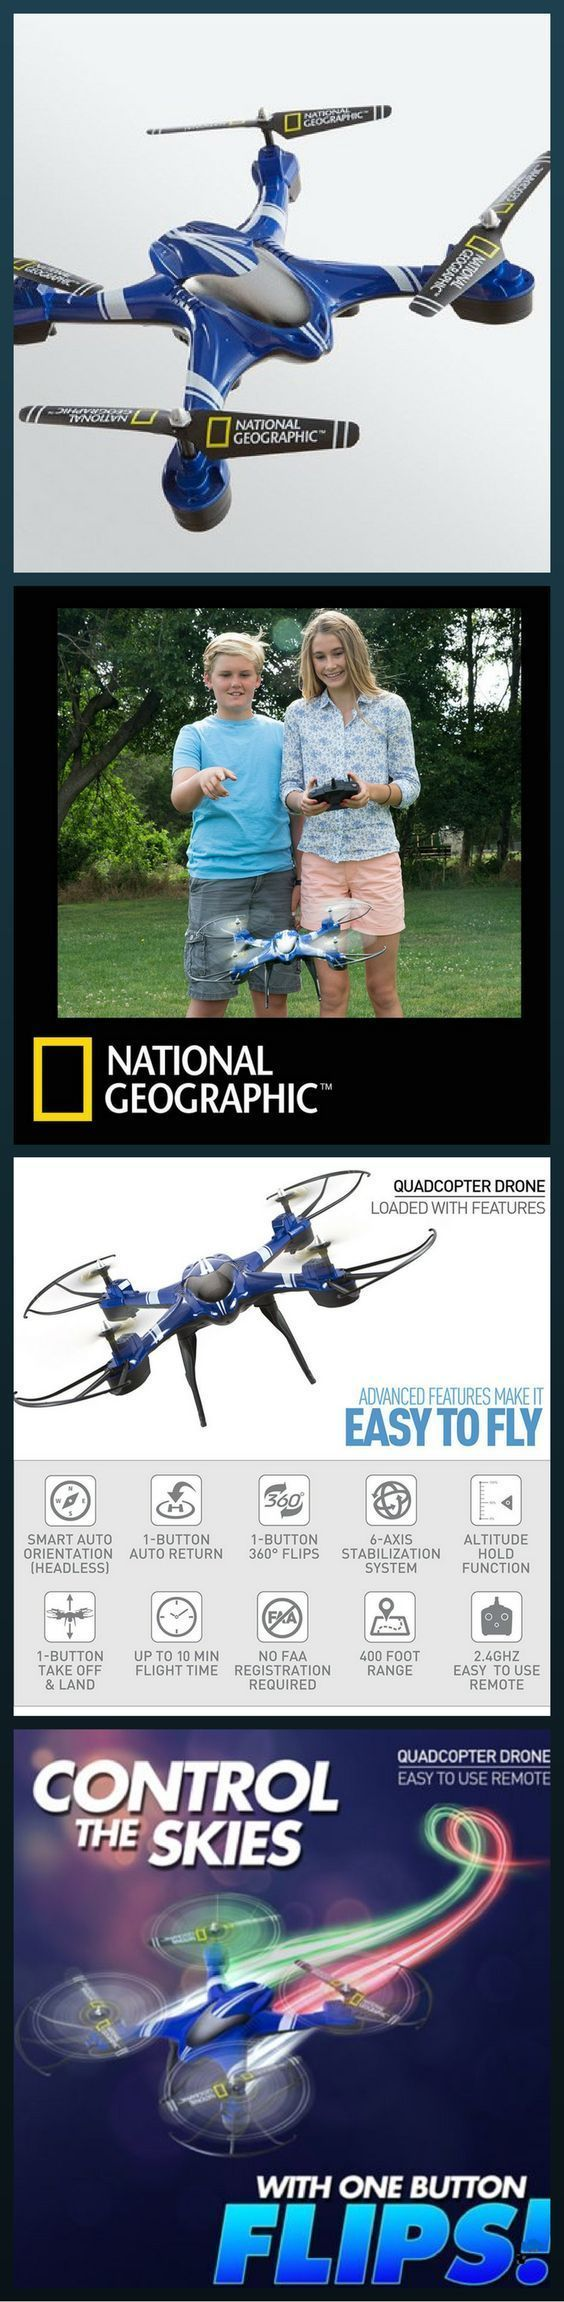 National Geographic Drone, Quadcoptor- Easy to use - With a kid-friendly design (age 14+) and an easy to use remote, our quad drone is great for novice pilots Auto-orientation and 1-button controls allow you to take-off, land and perform 360-degree flips, while built-in speed settings offer maneuverability and control